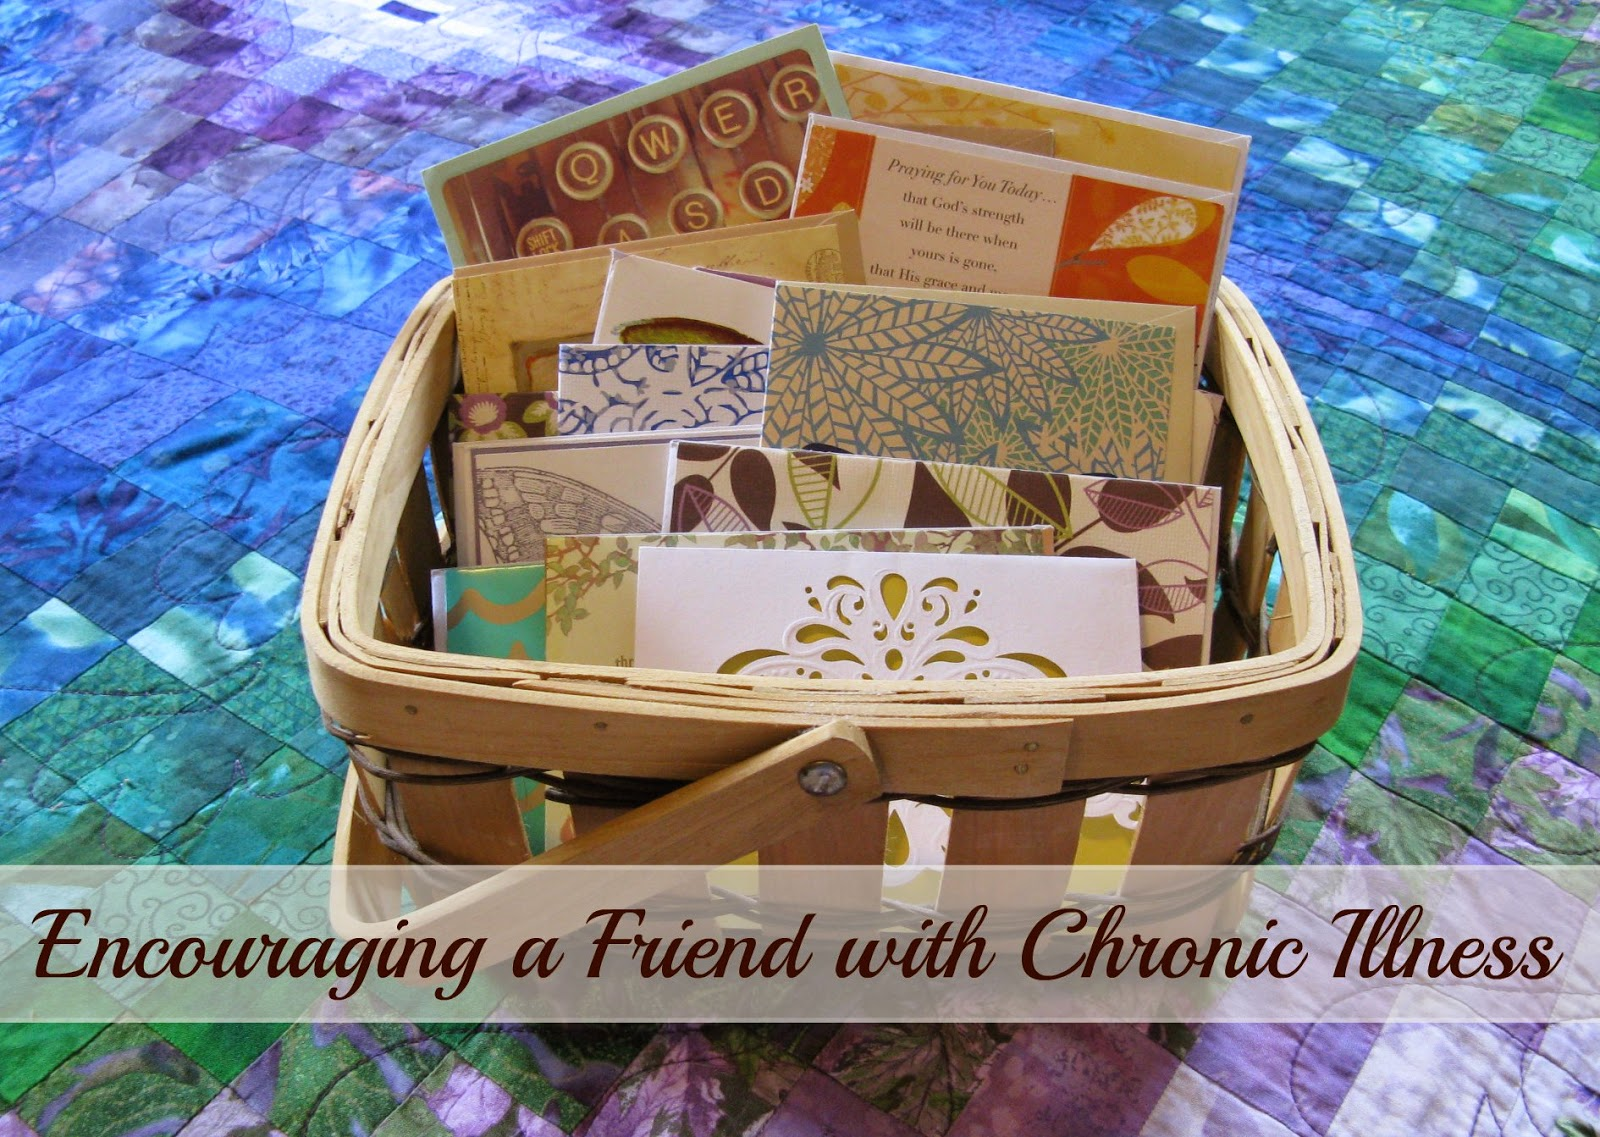 Encouraging a Friend with Chronic Illness